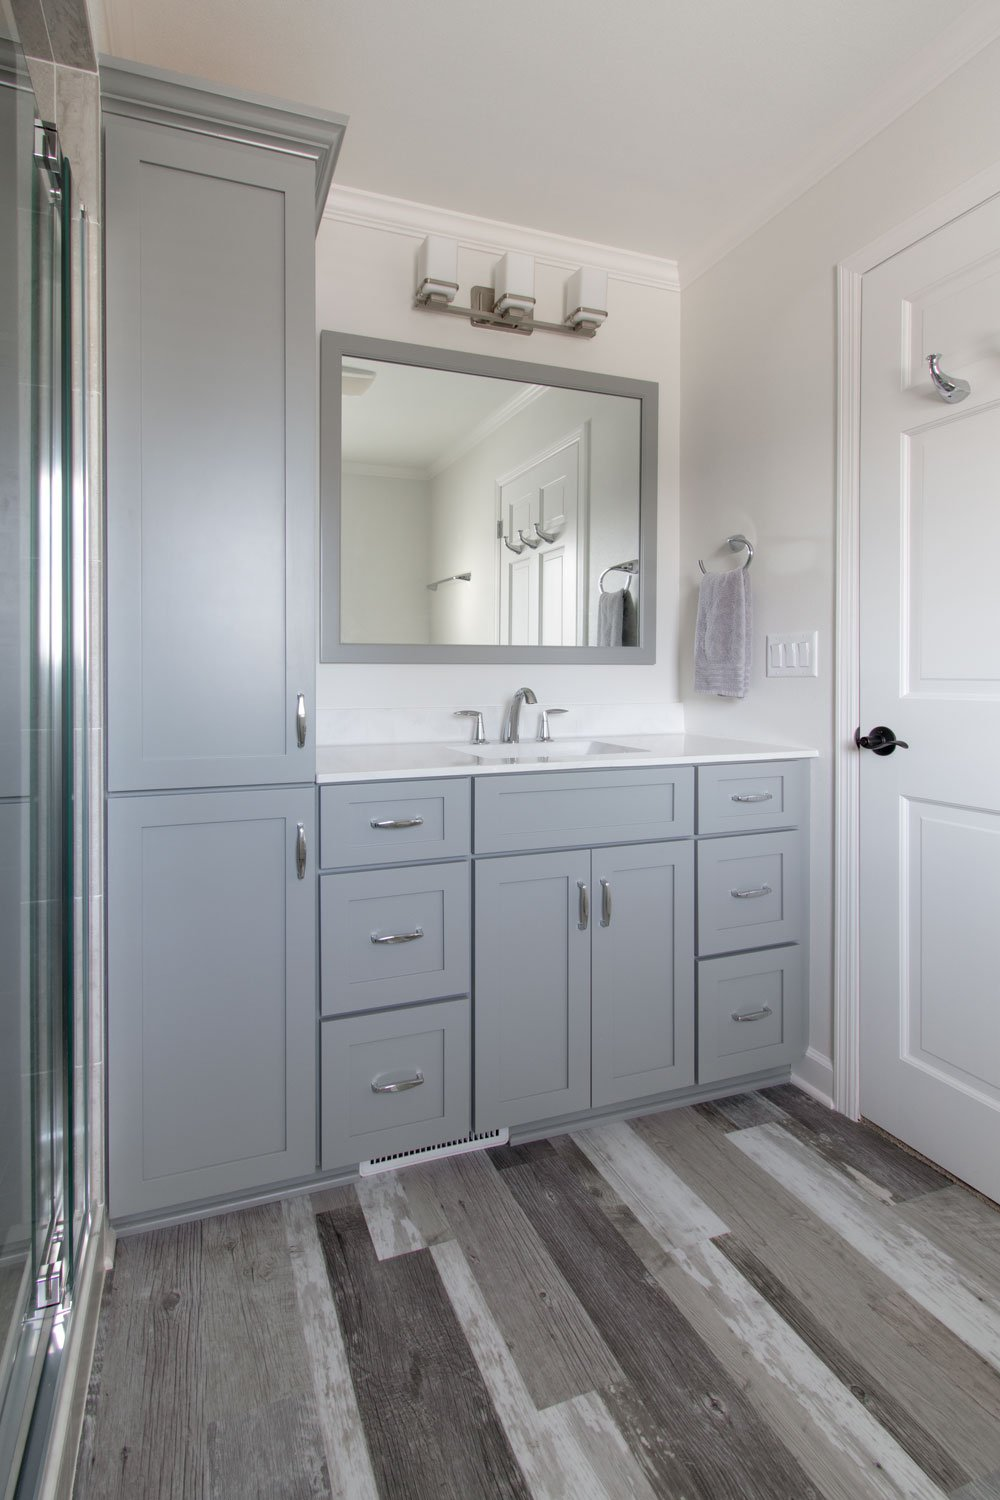 gray cabinetry and vinyl plank flooring